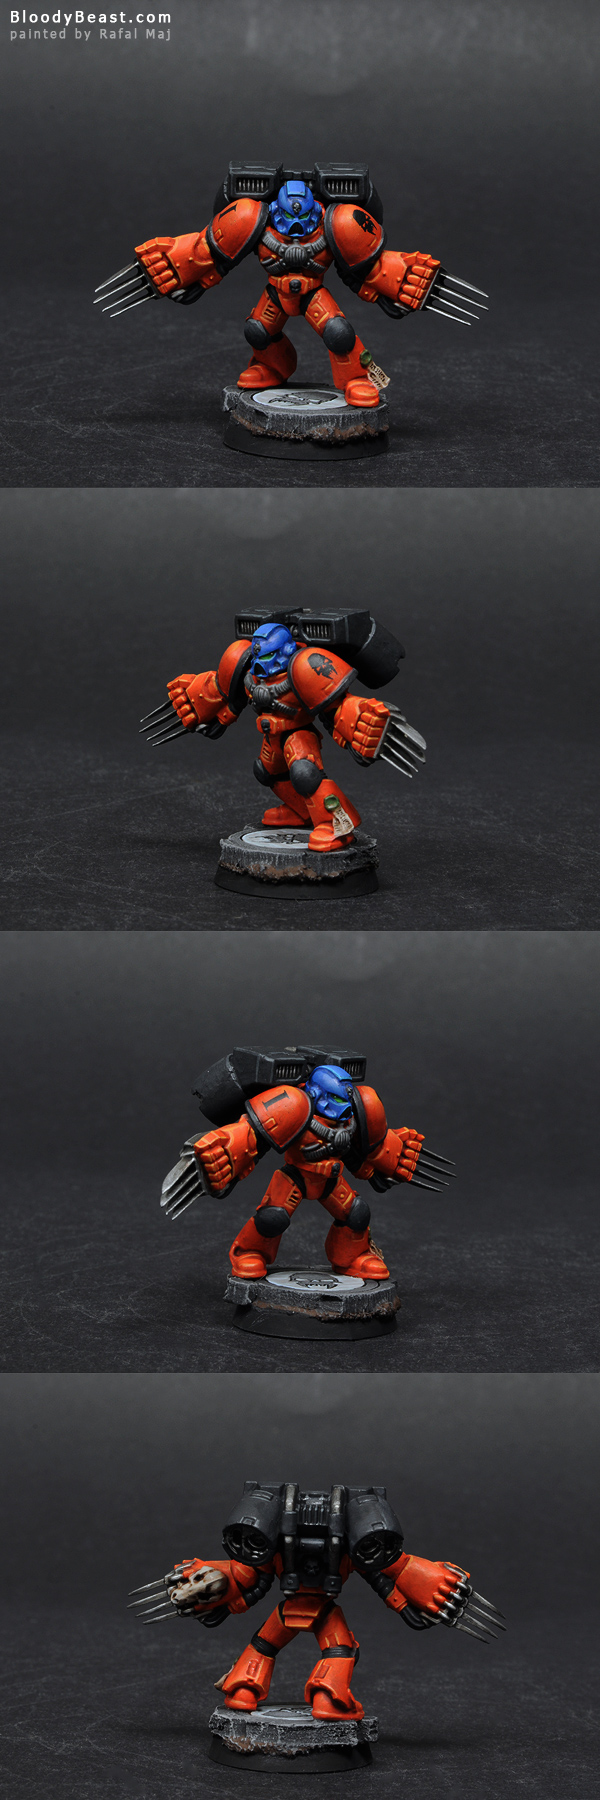 Astral Tigers Assault Squad Sergeant painted by Rafal Maj (BloodyBeast.com)